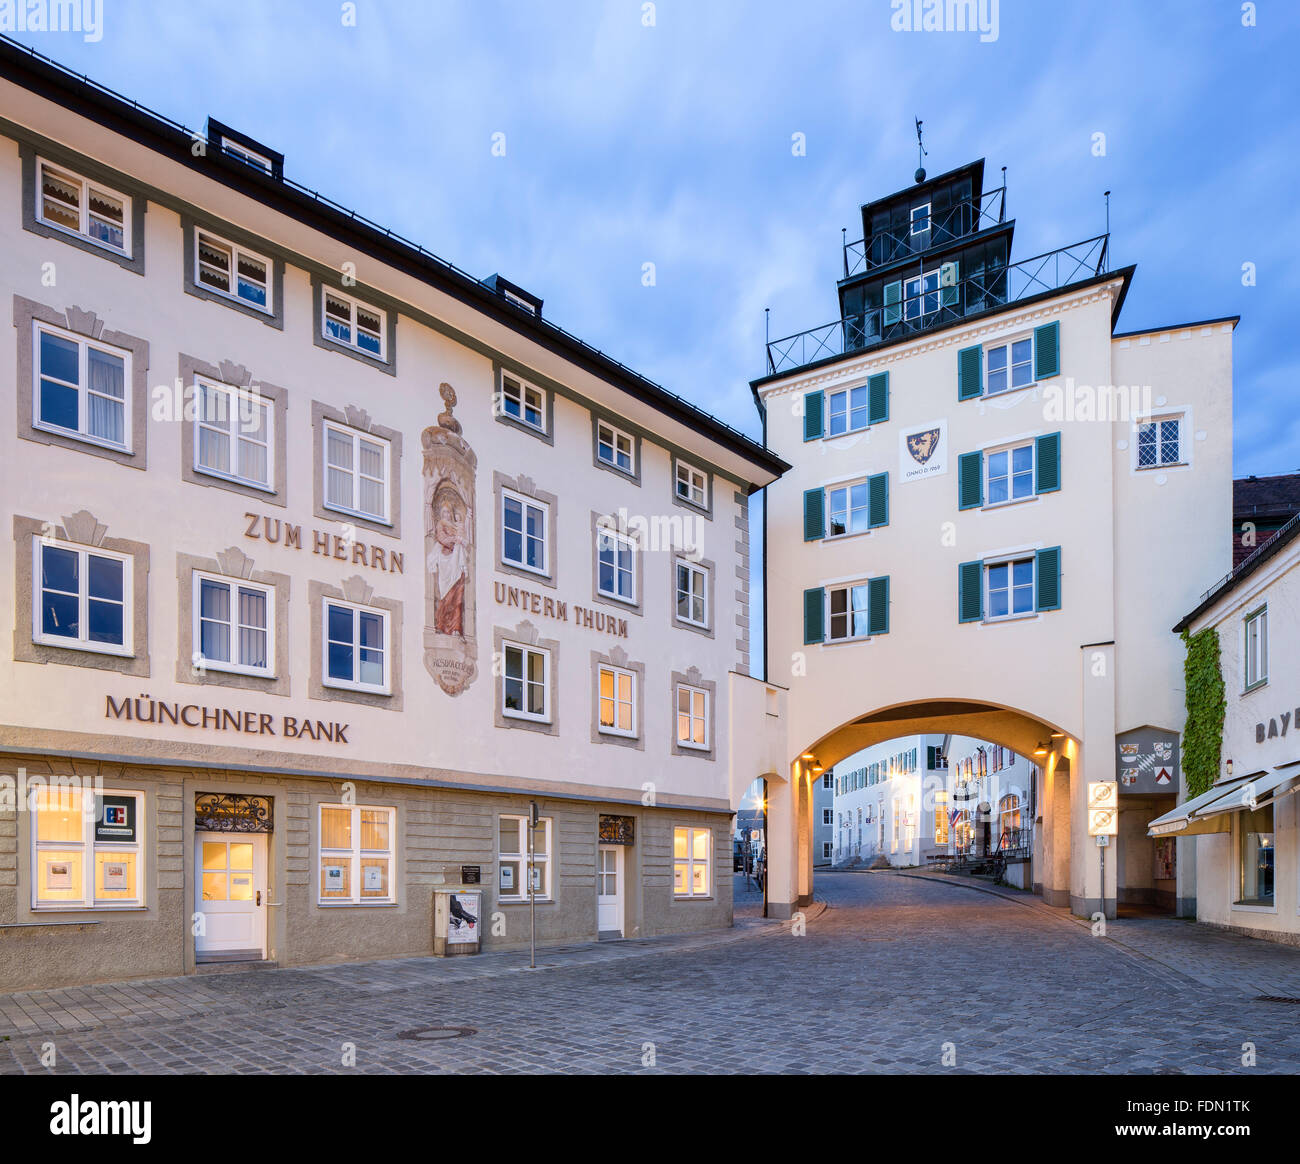 Khan tower of the medieval fortifications, Bad Tölz, Upper Bavaria, Bavaria, Germany - Stock Image